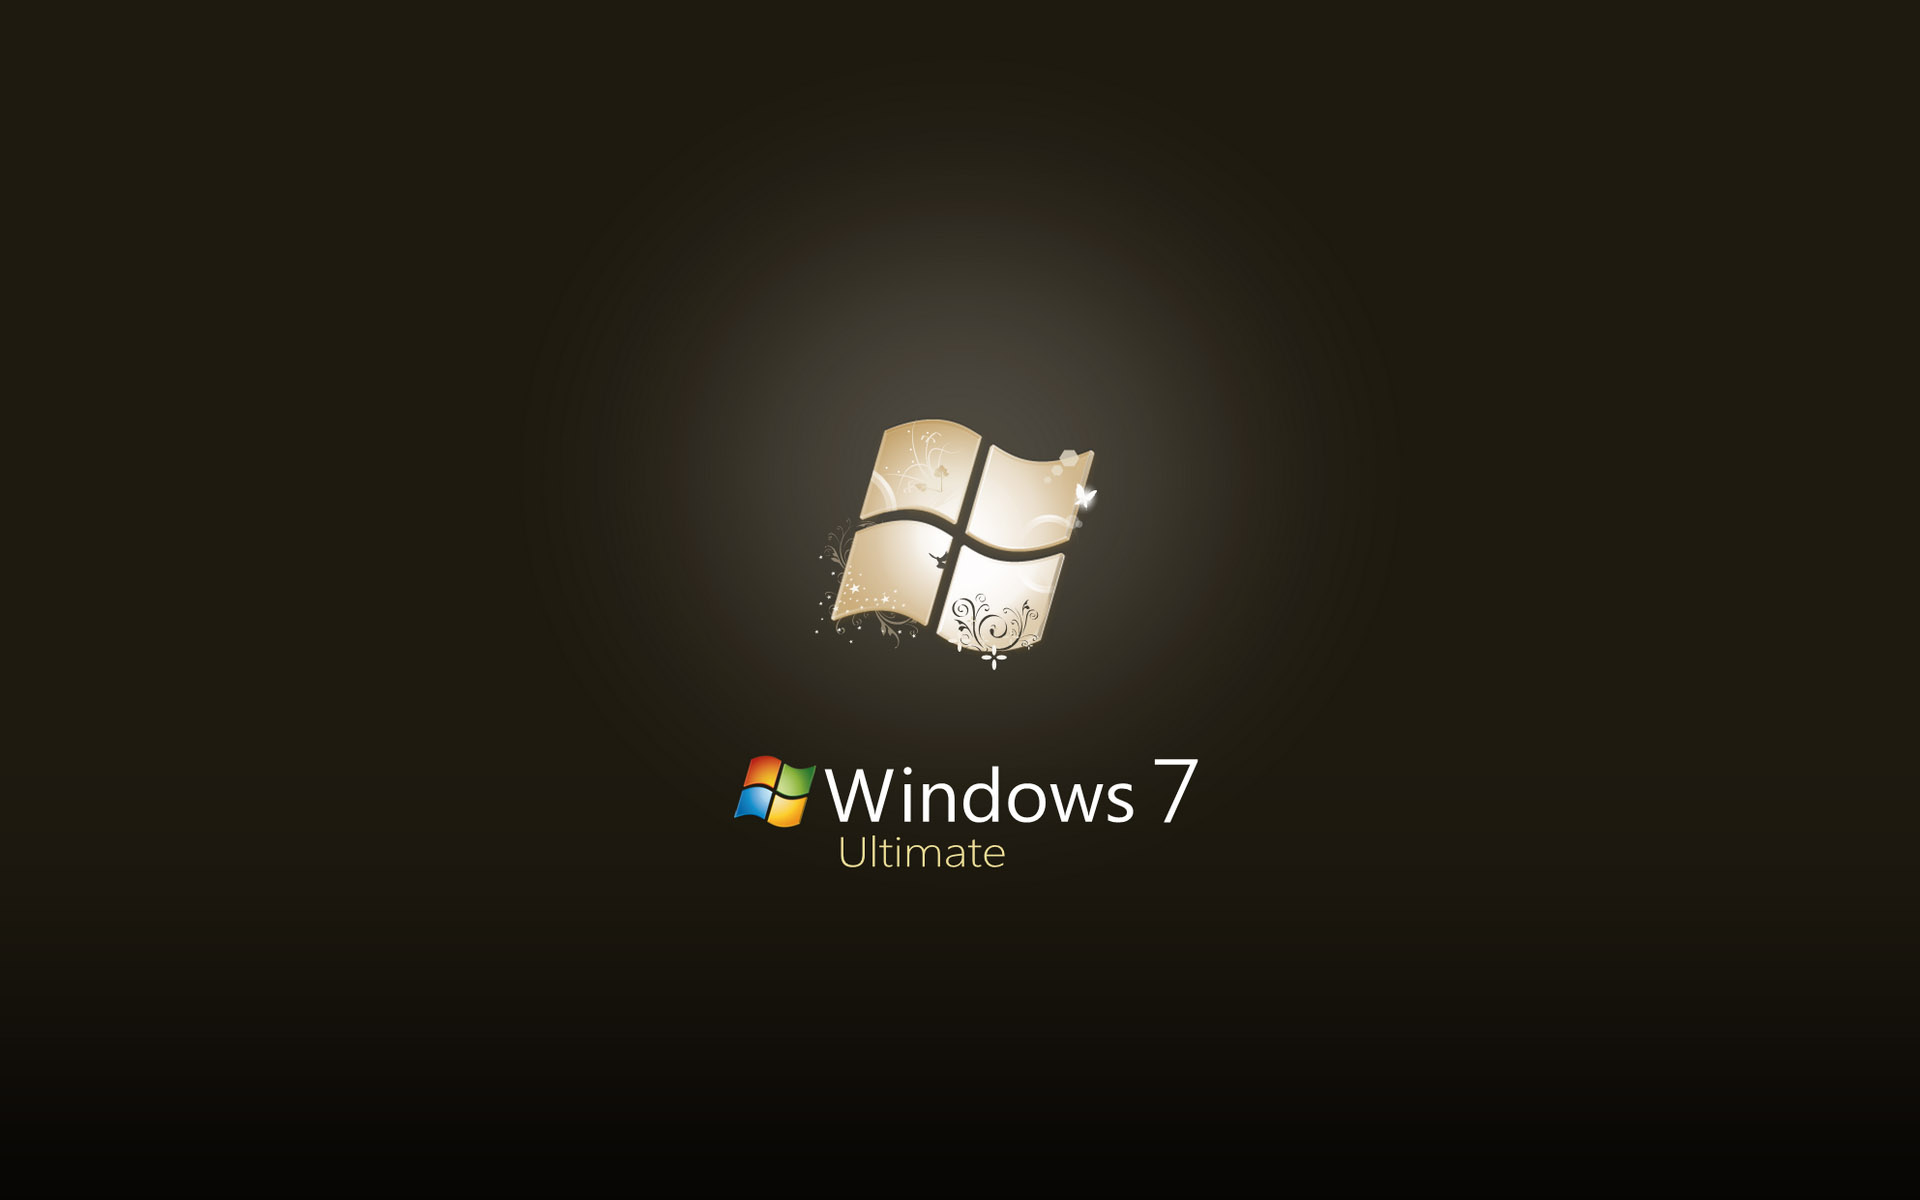 Hot Windows 7 Background